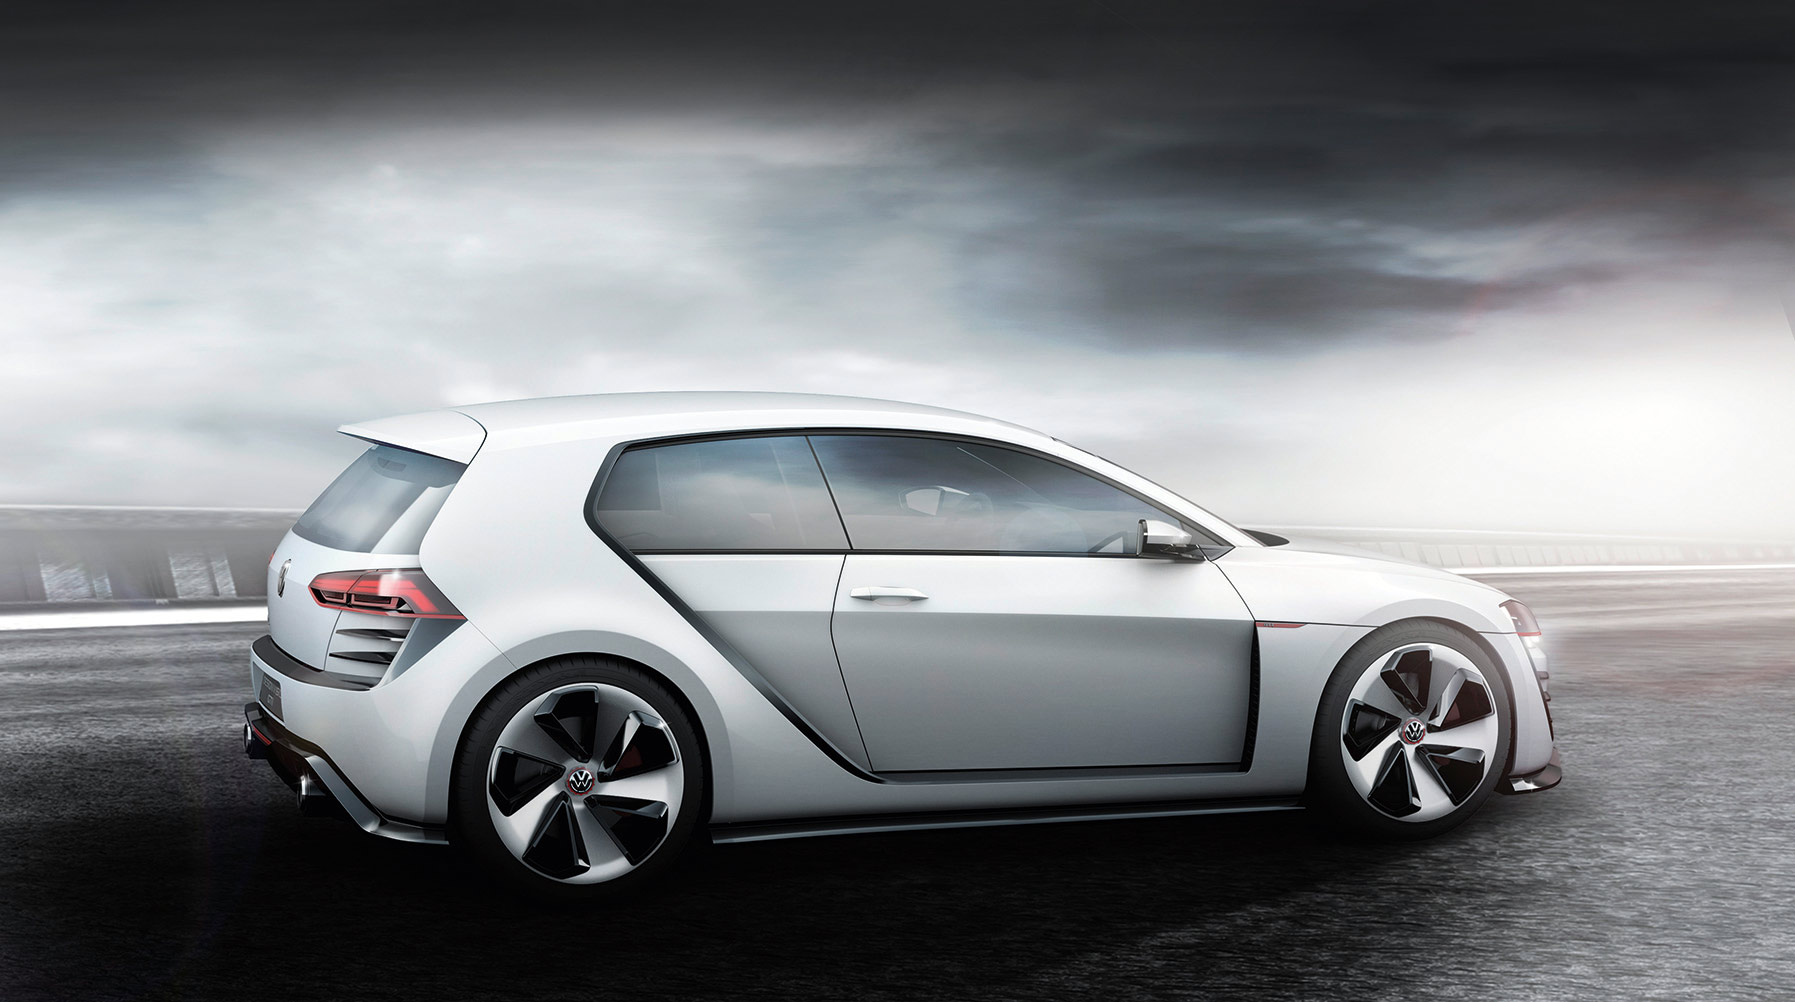 volkswagen-design-vision-gti-worthersee-008